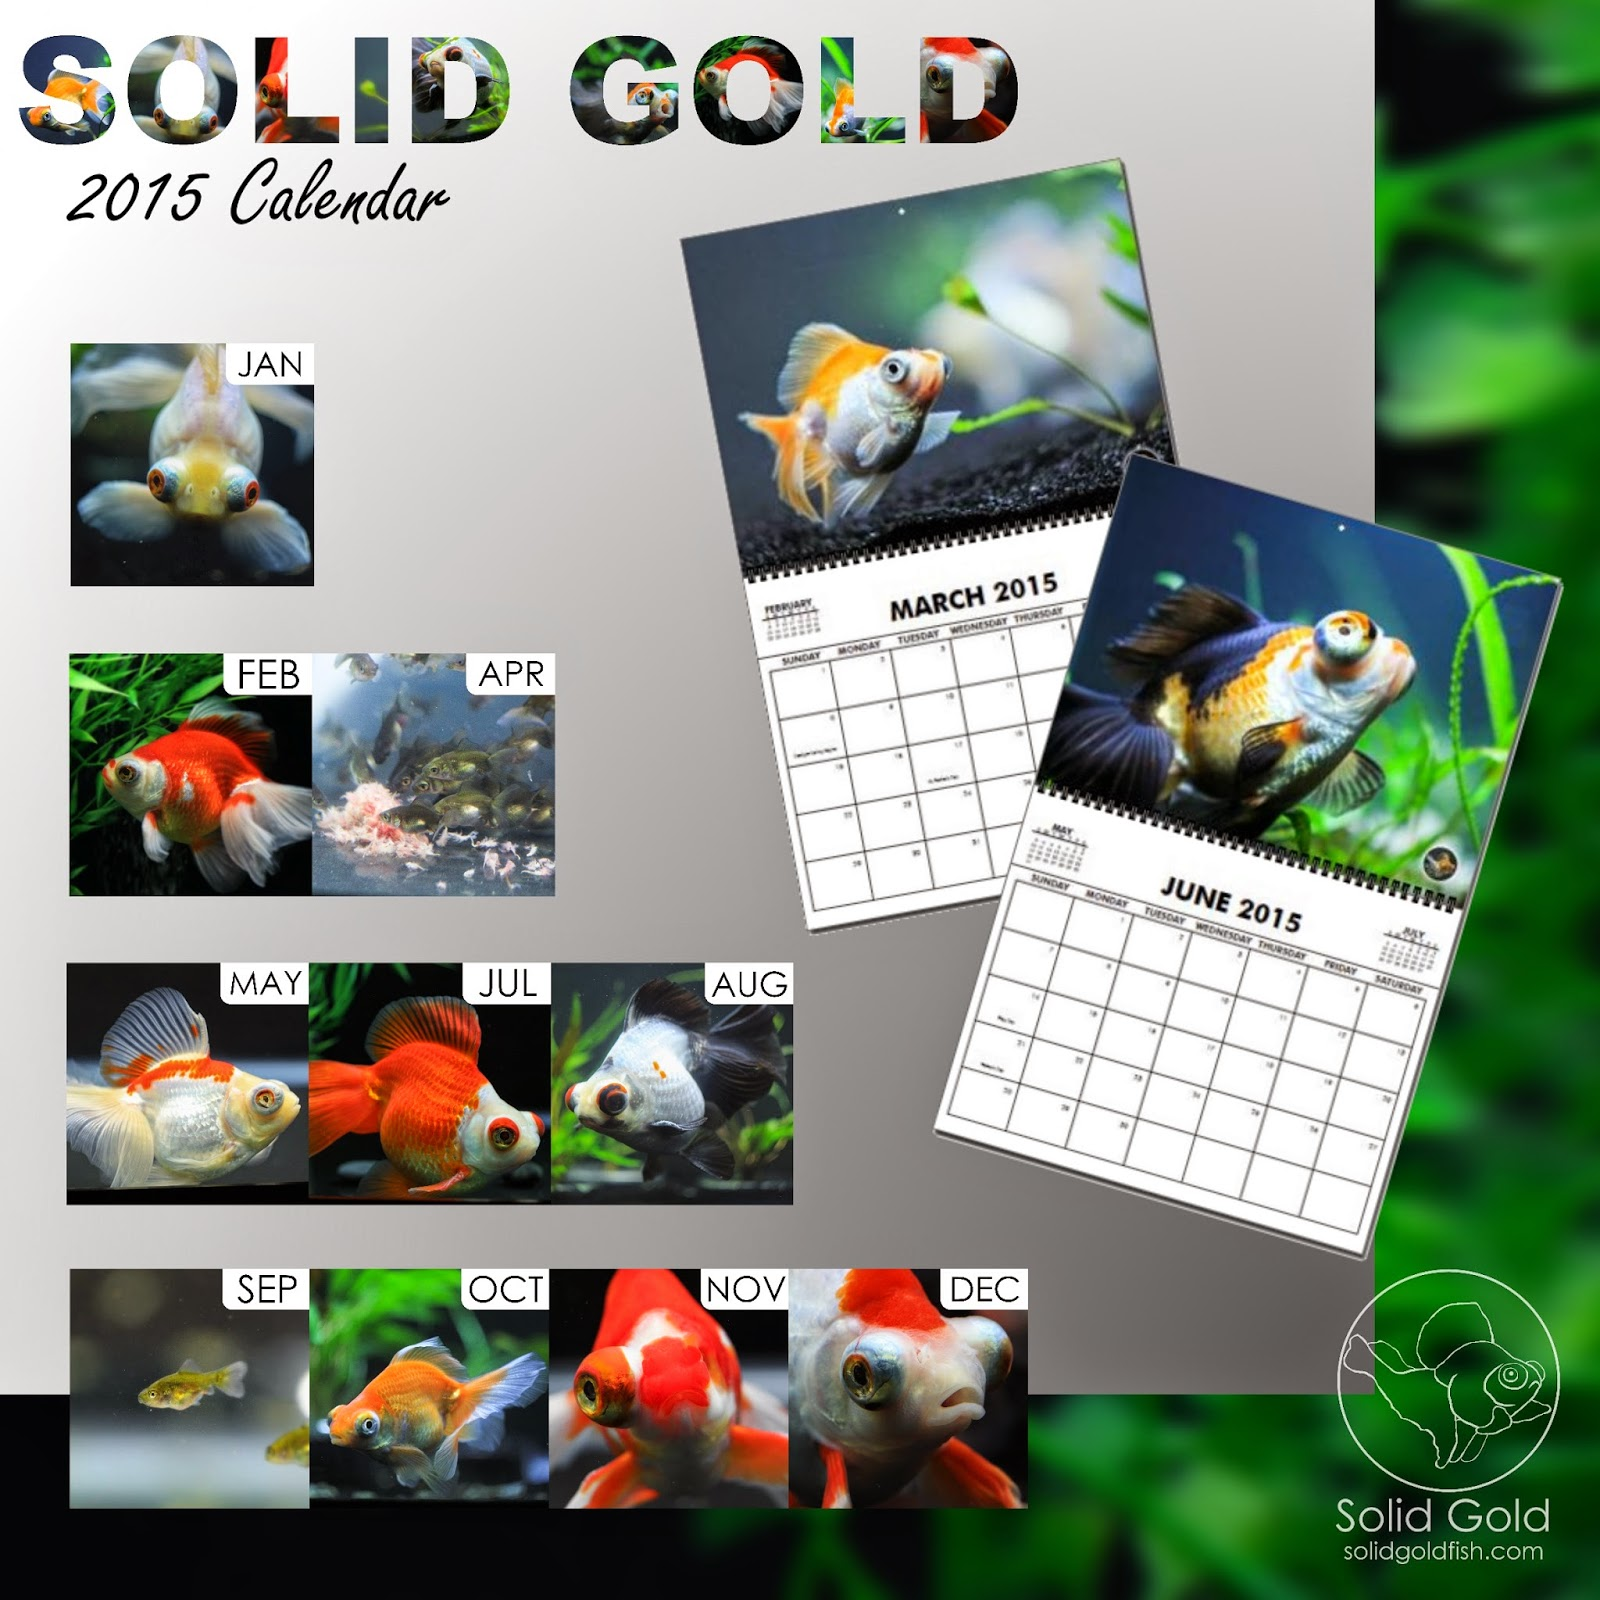 2015 SOLID GOLD Calendar!